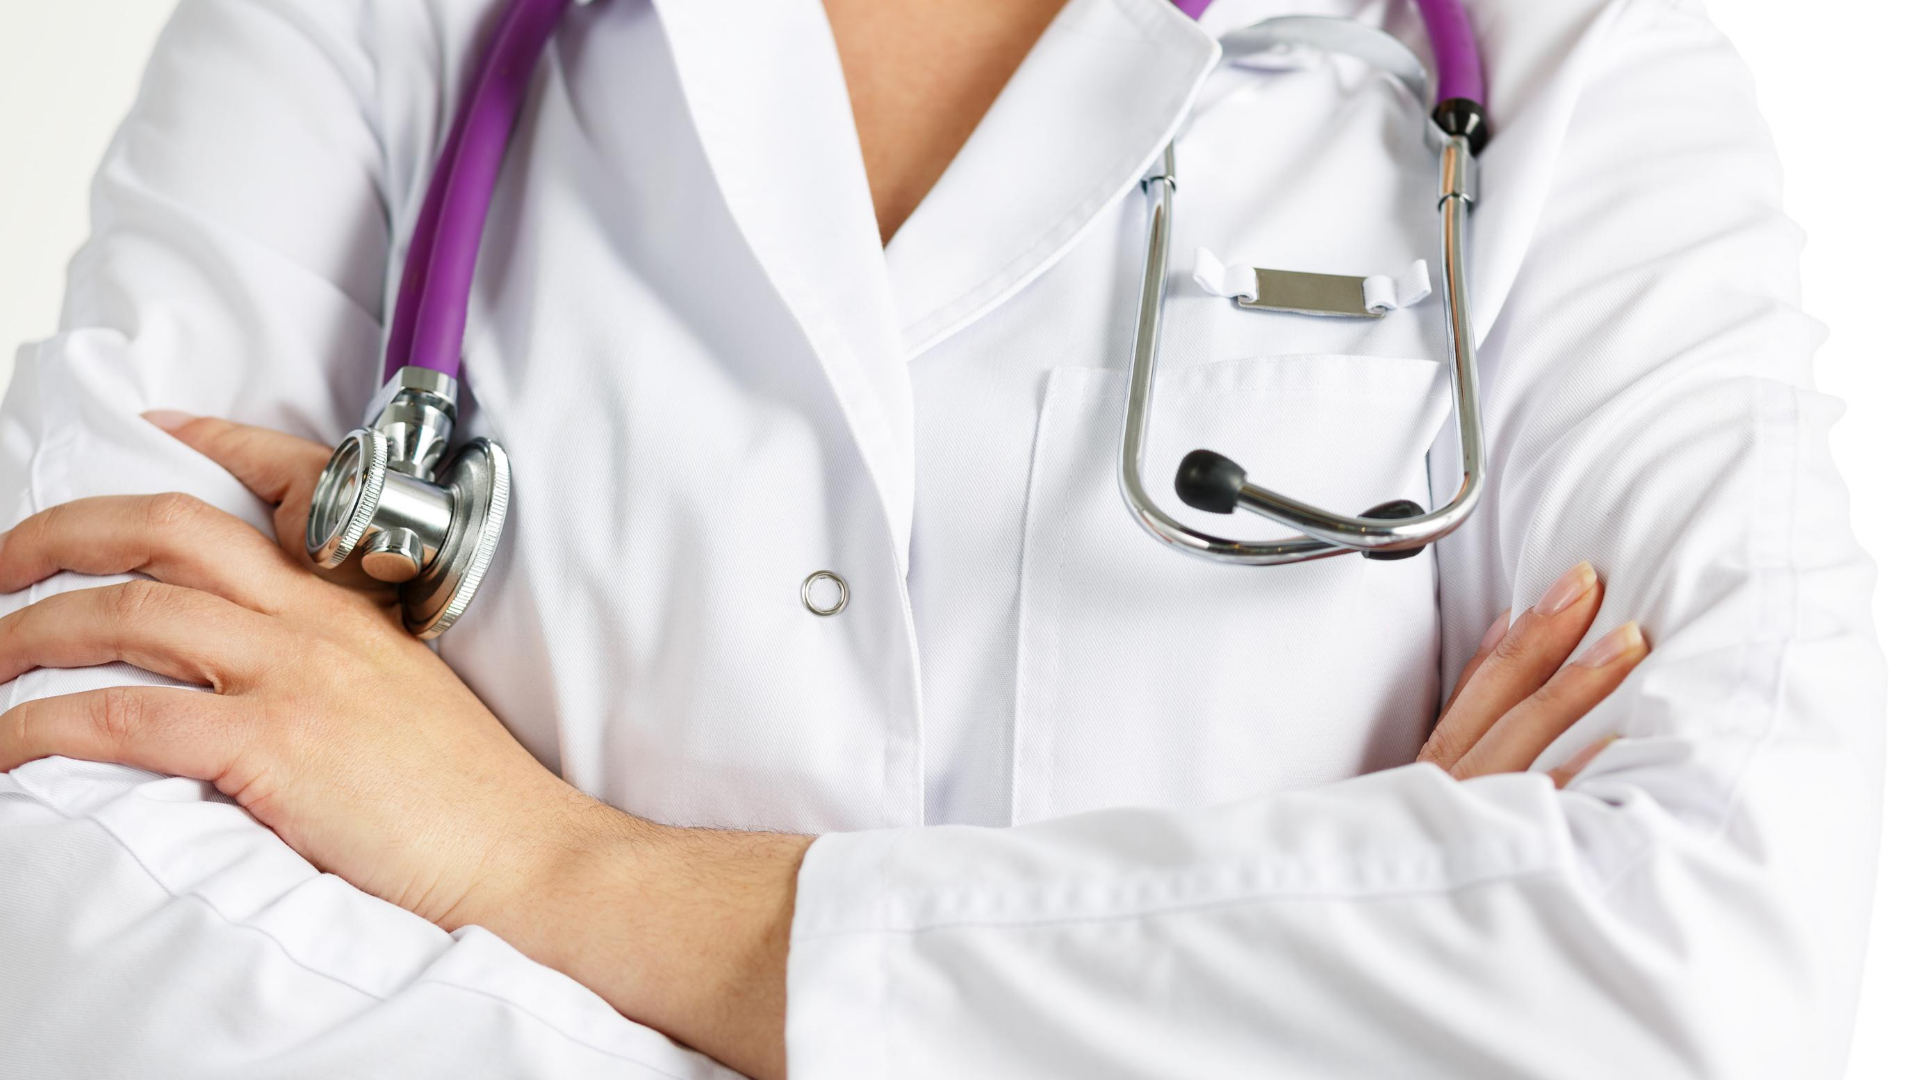 Faculty Members Publish Analysis Of U.S. Medical School Primary Care Outcomes